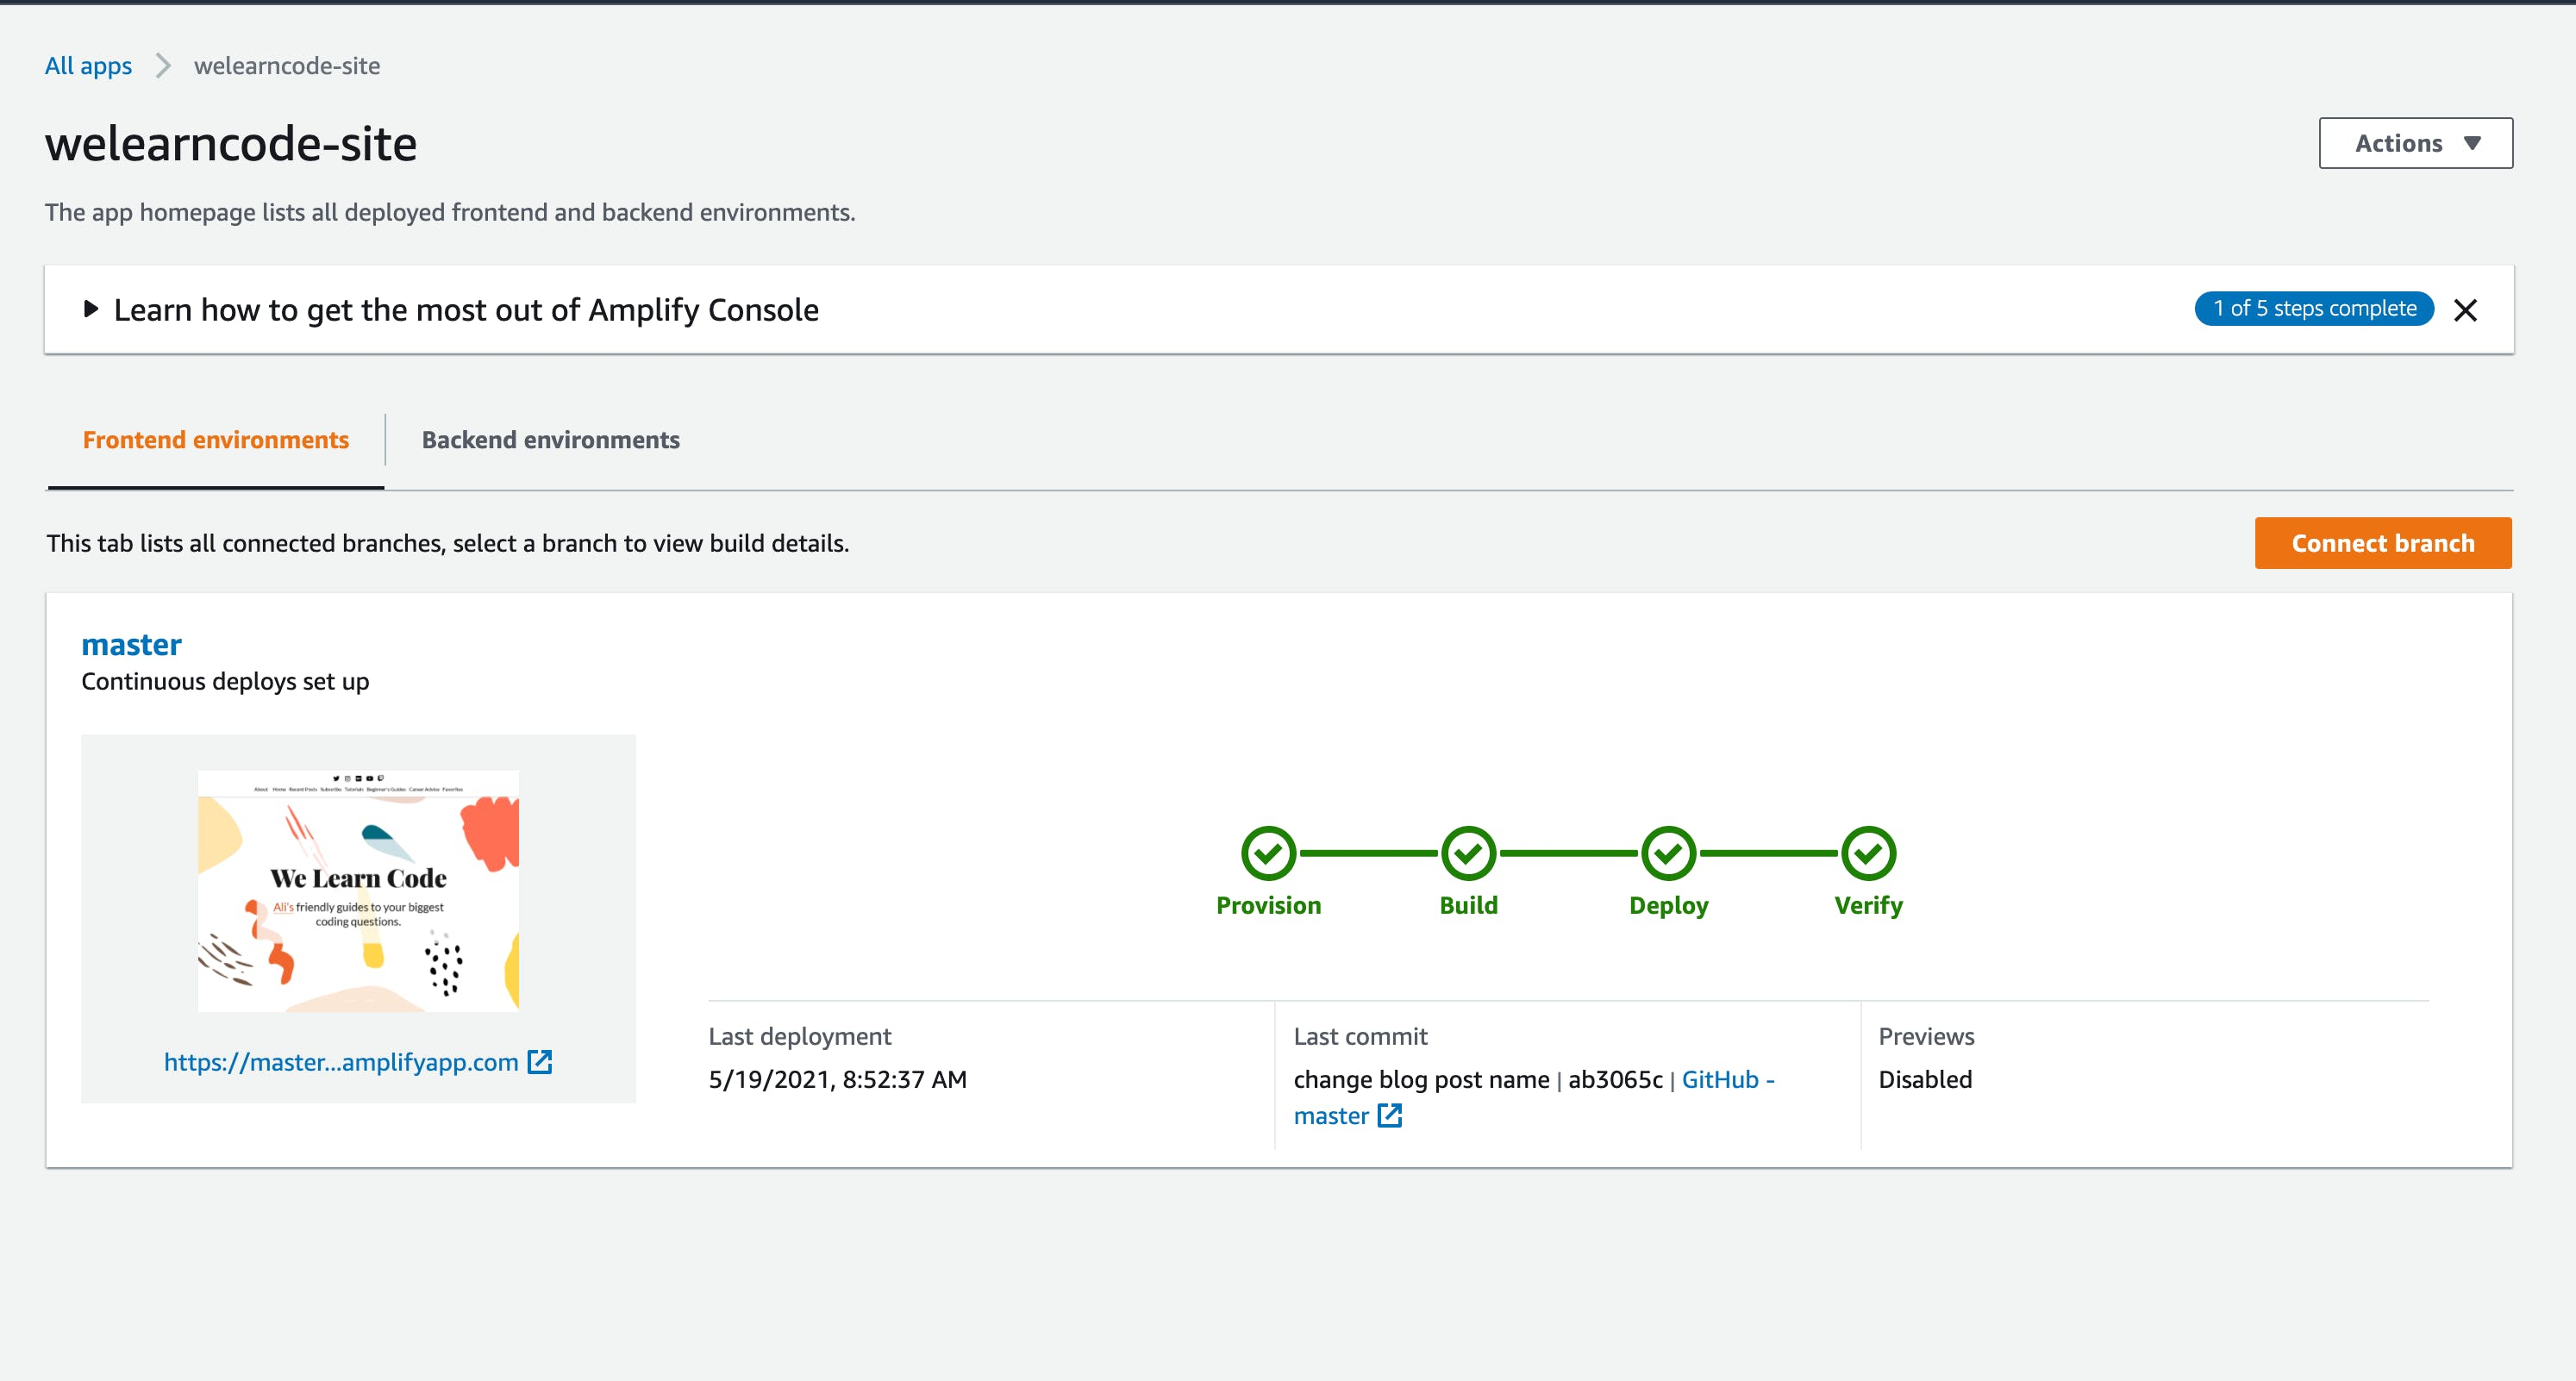 The connect branch button on the AWS Amplify Console